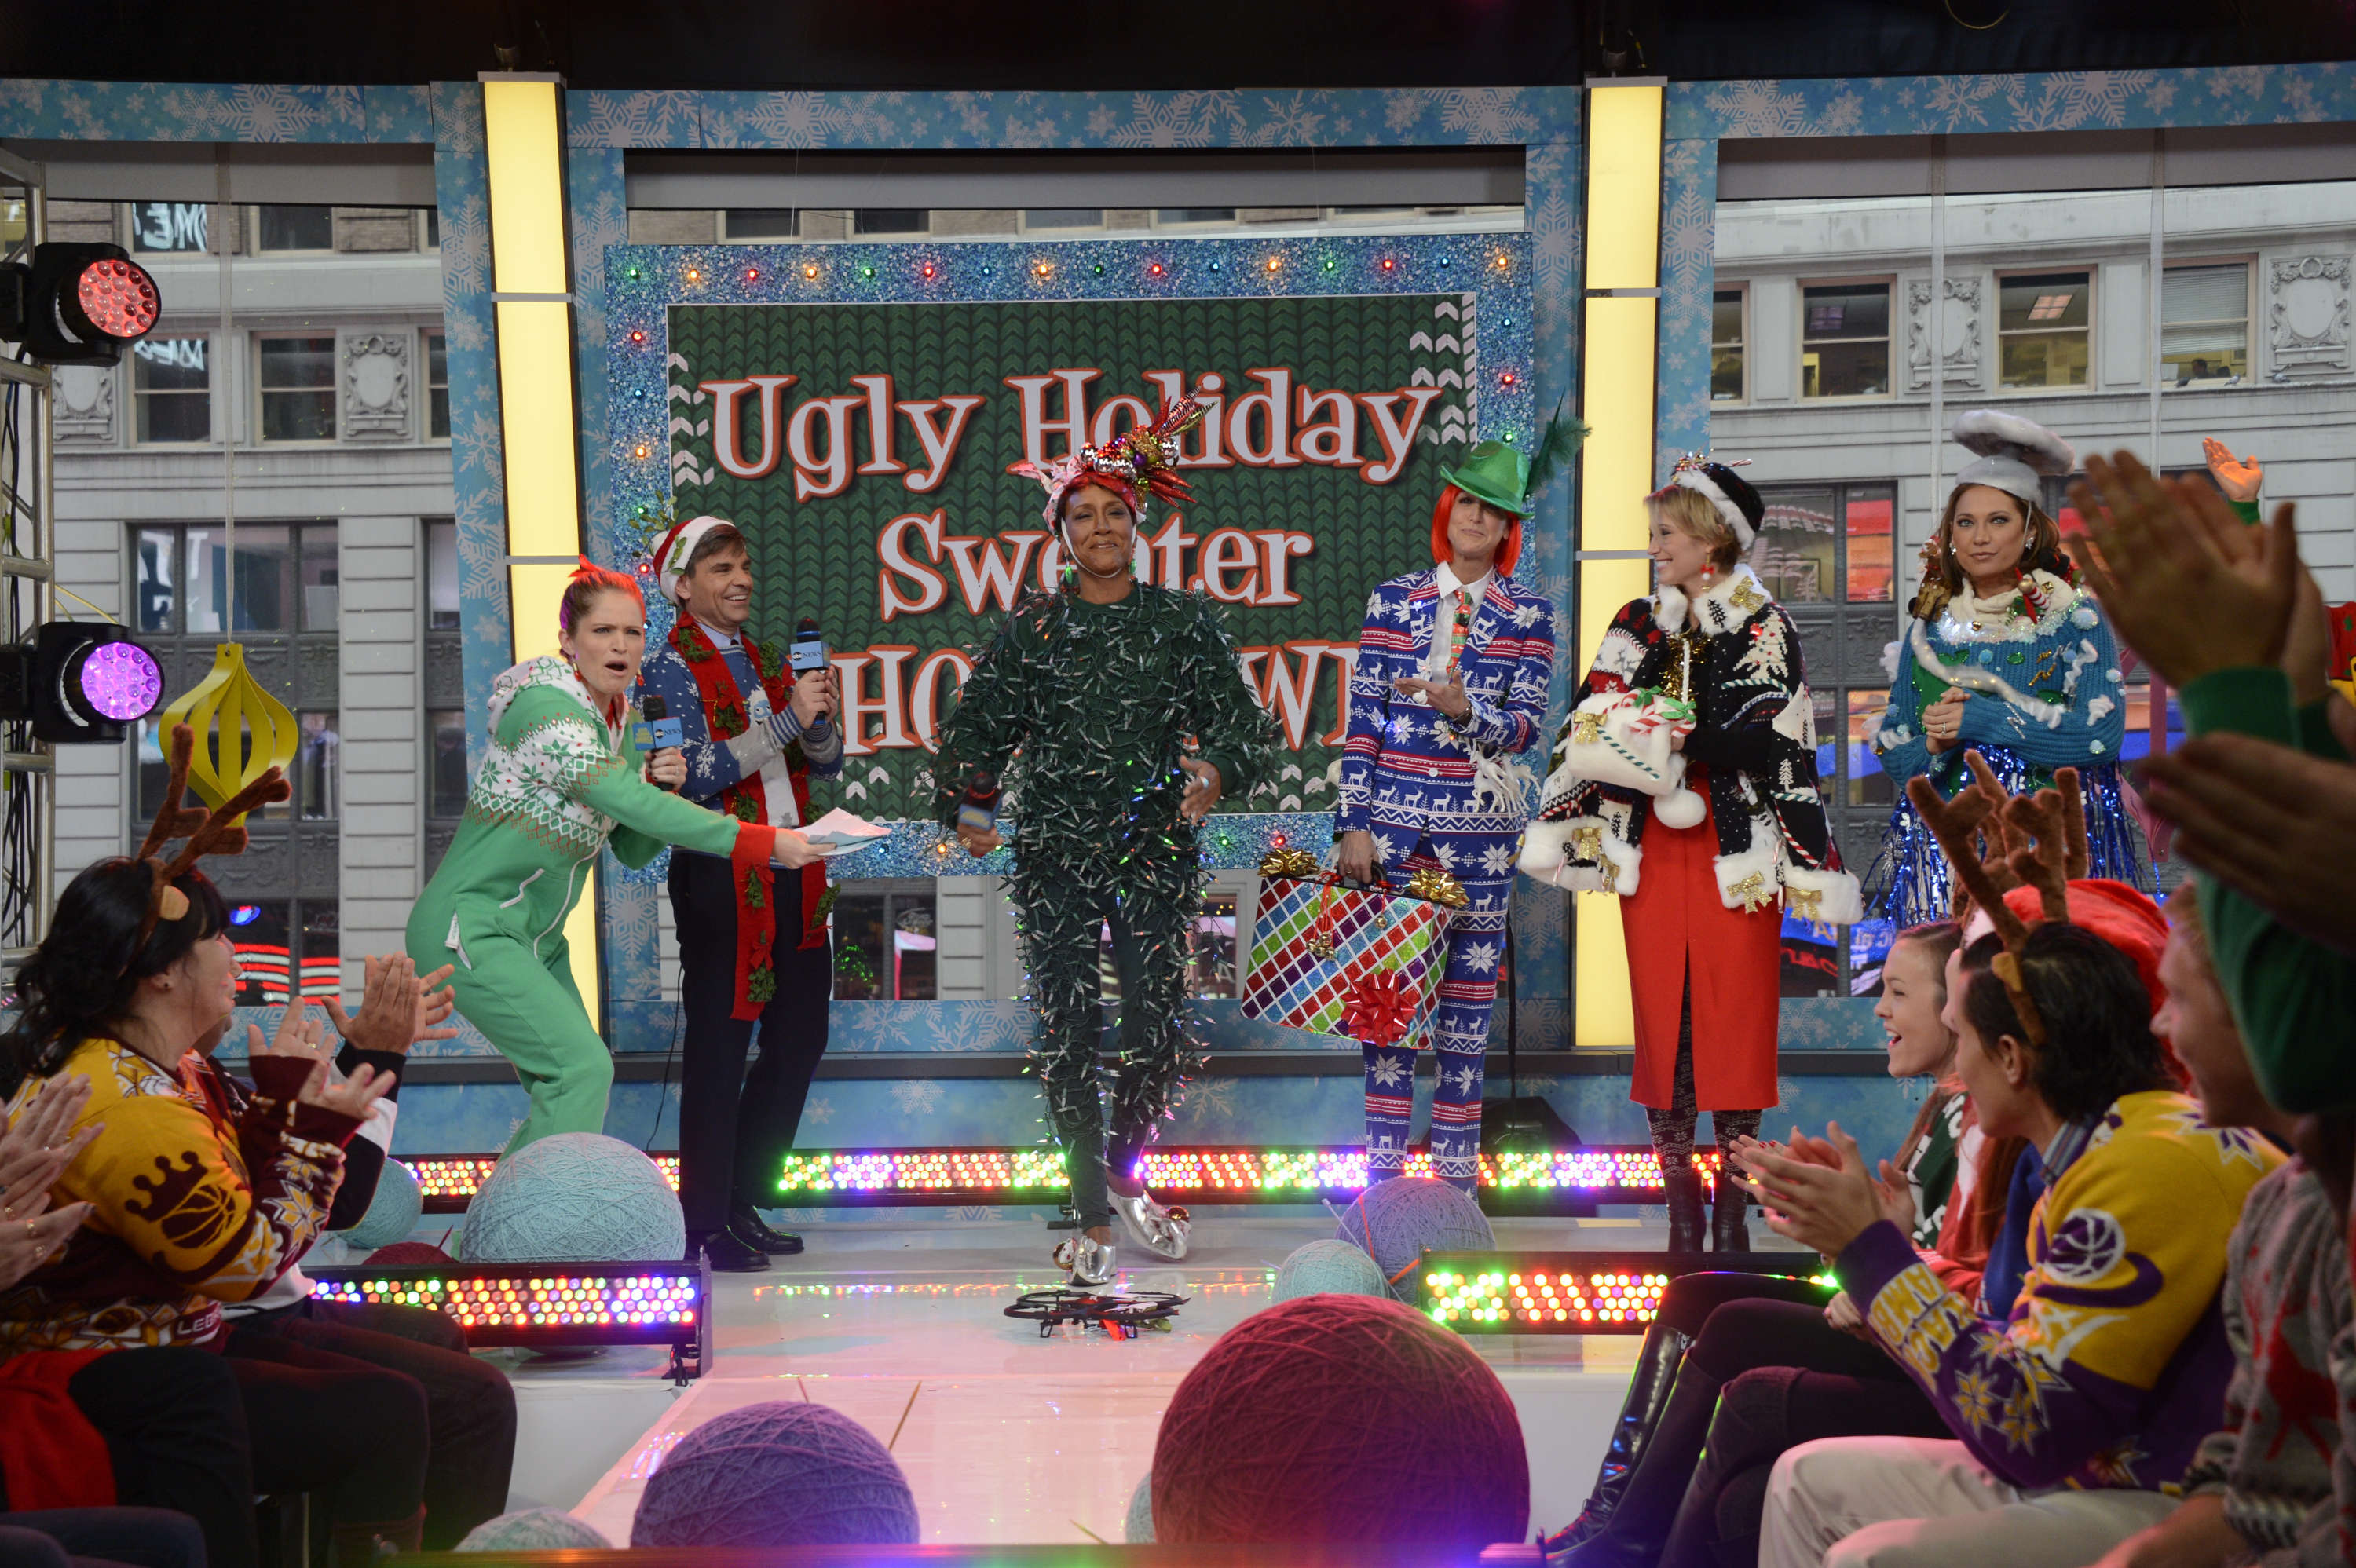 Good Morning America's annual ugly sweater party.